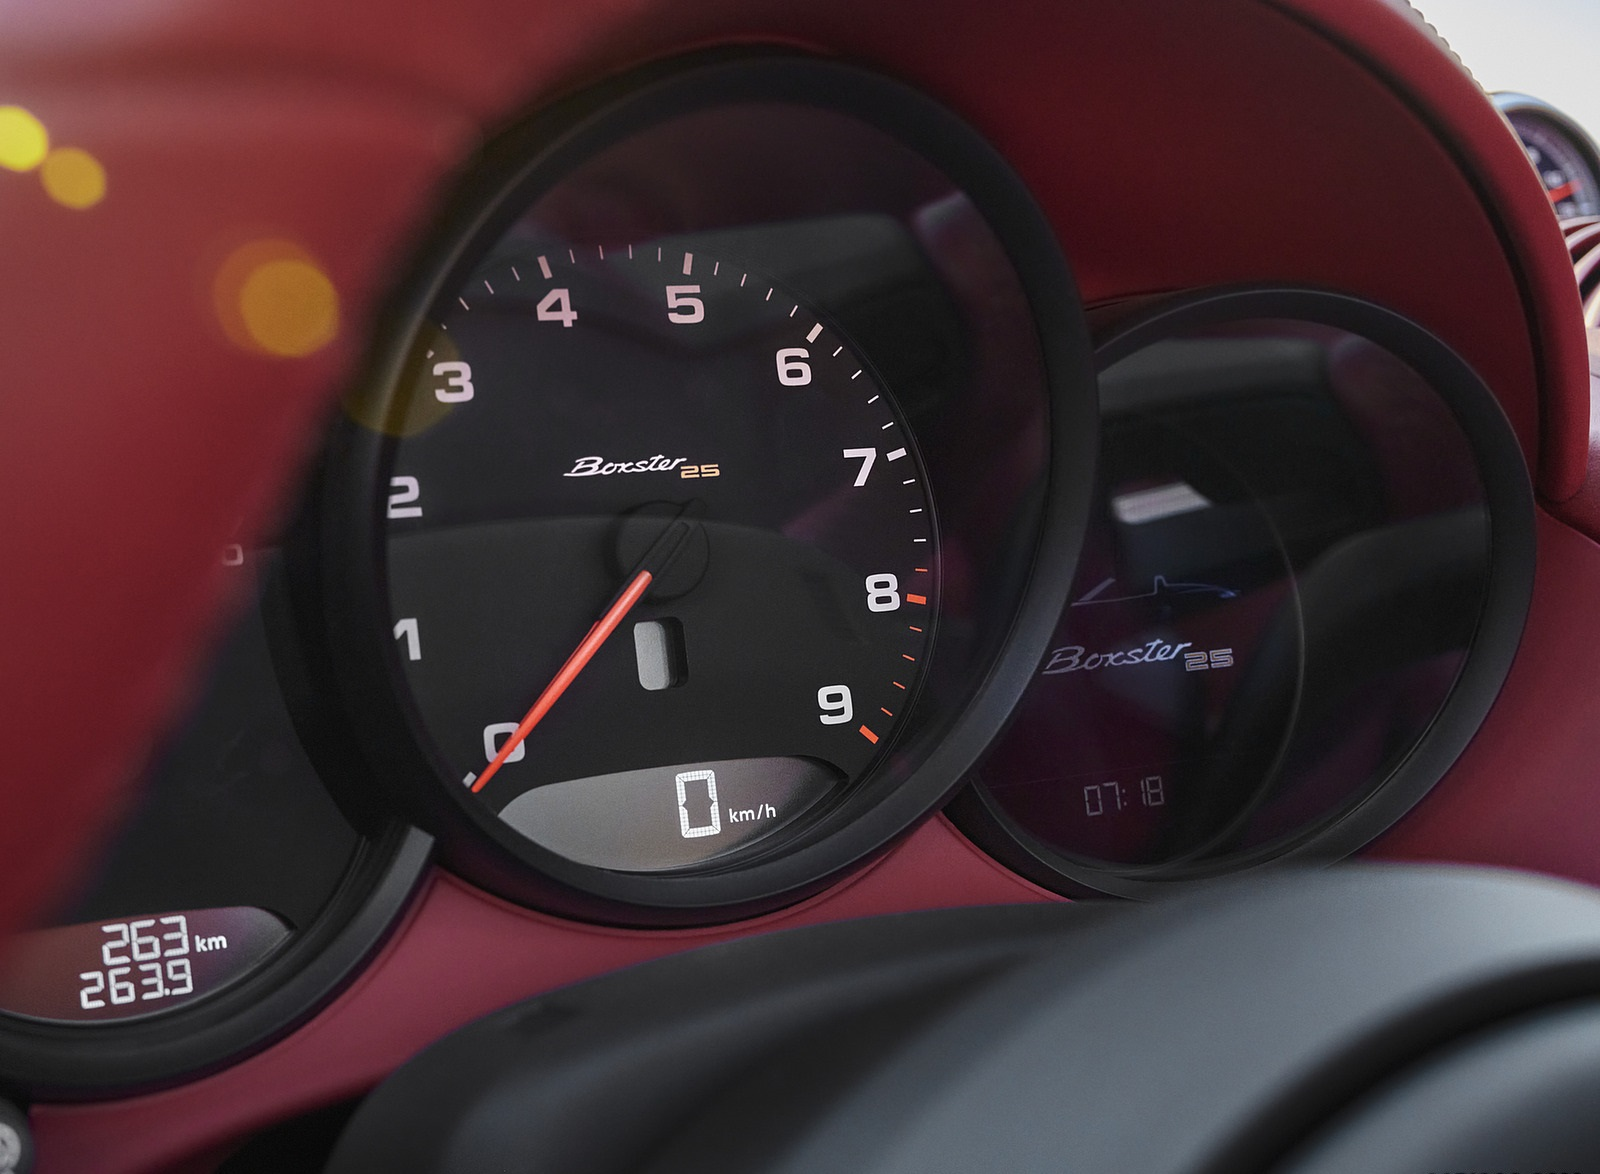 2021 Porsche 718 Boxster GTS 4.0 25 years Instrument Cluster Wallpapers (8)